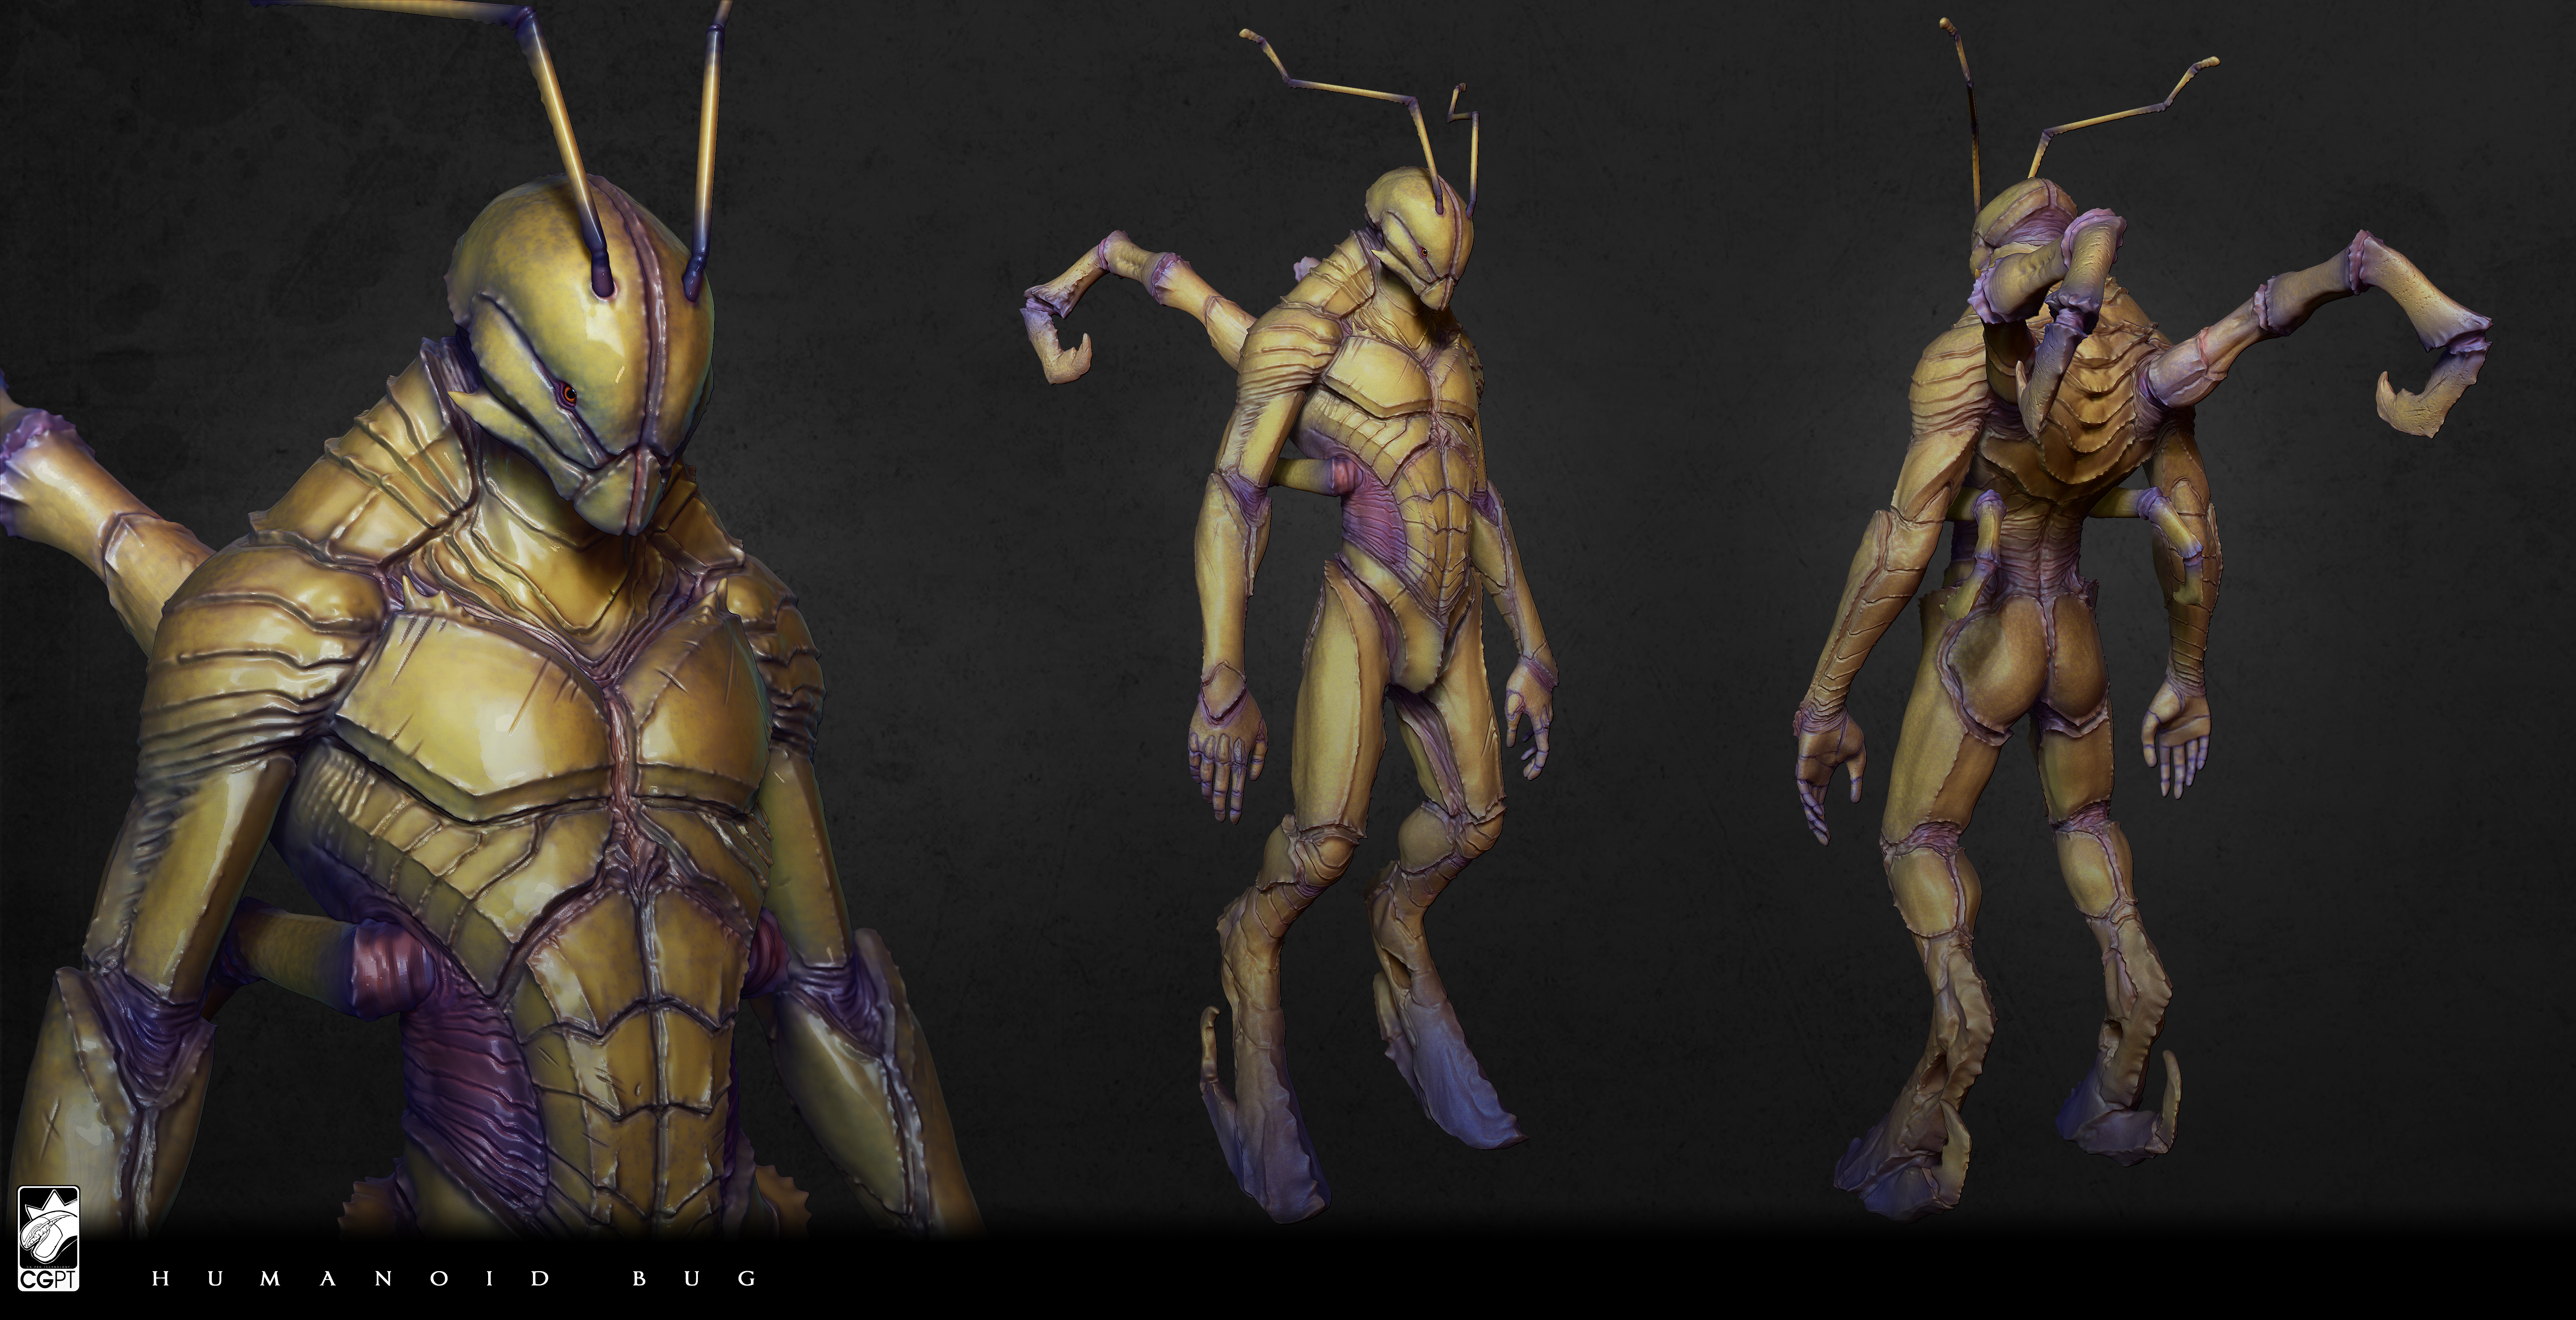 Humanoid Bug concept by CGPTTeam on DeviantArt